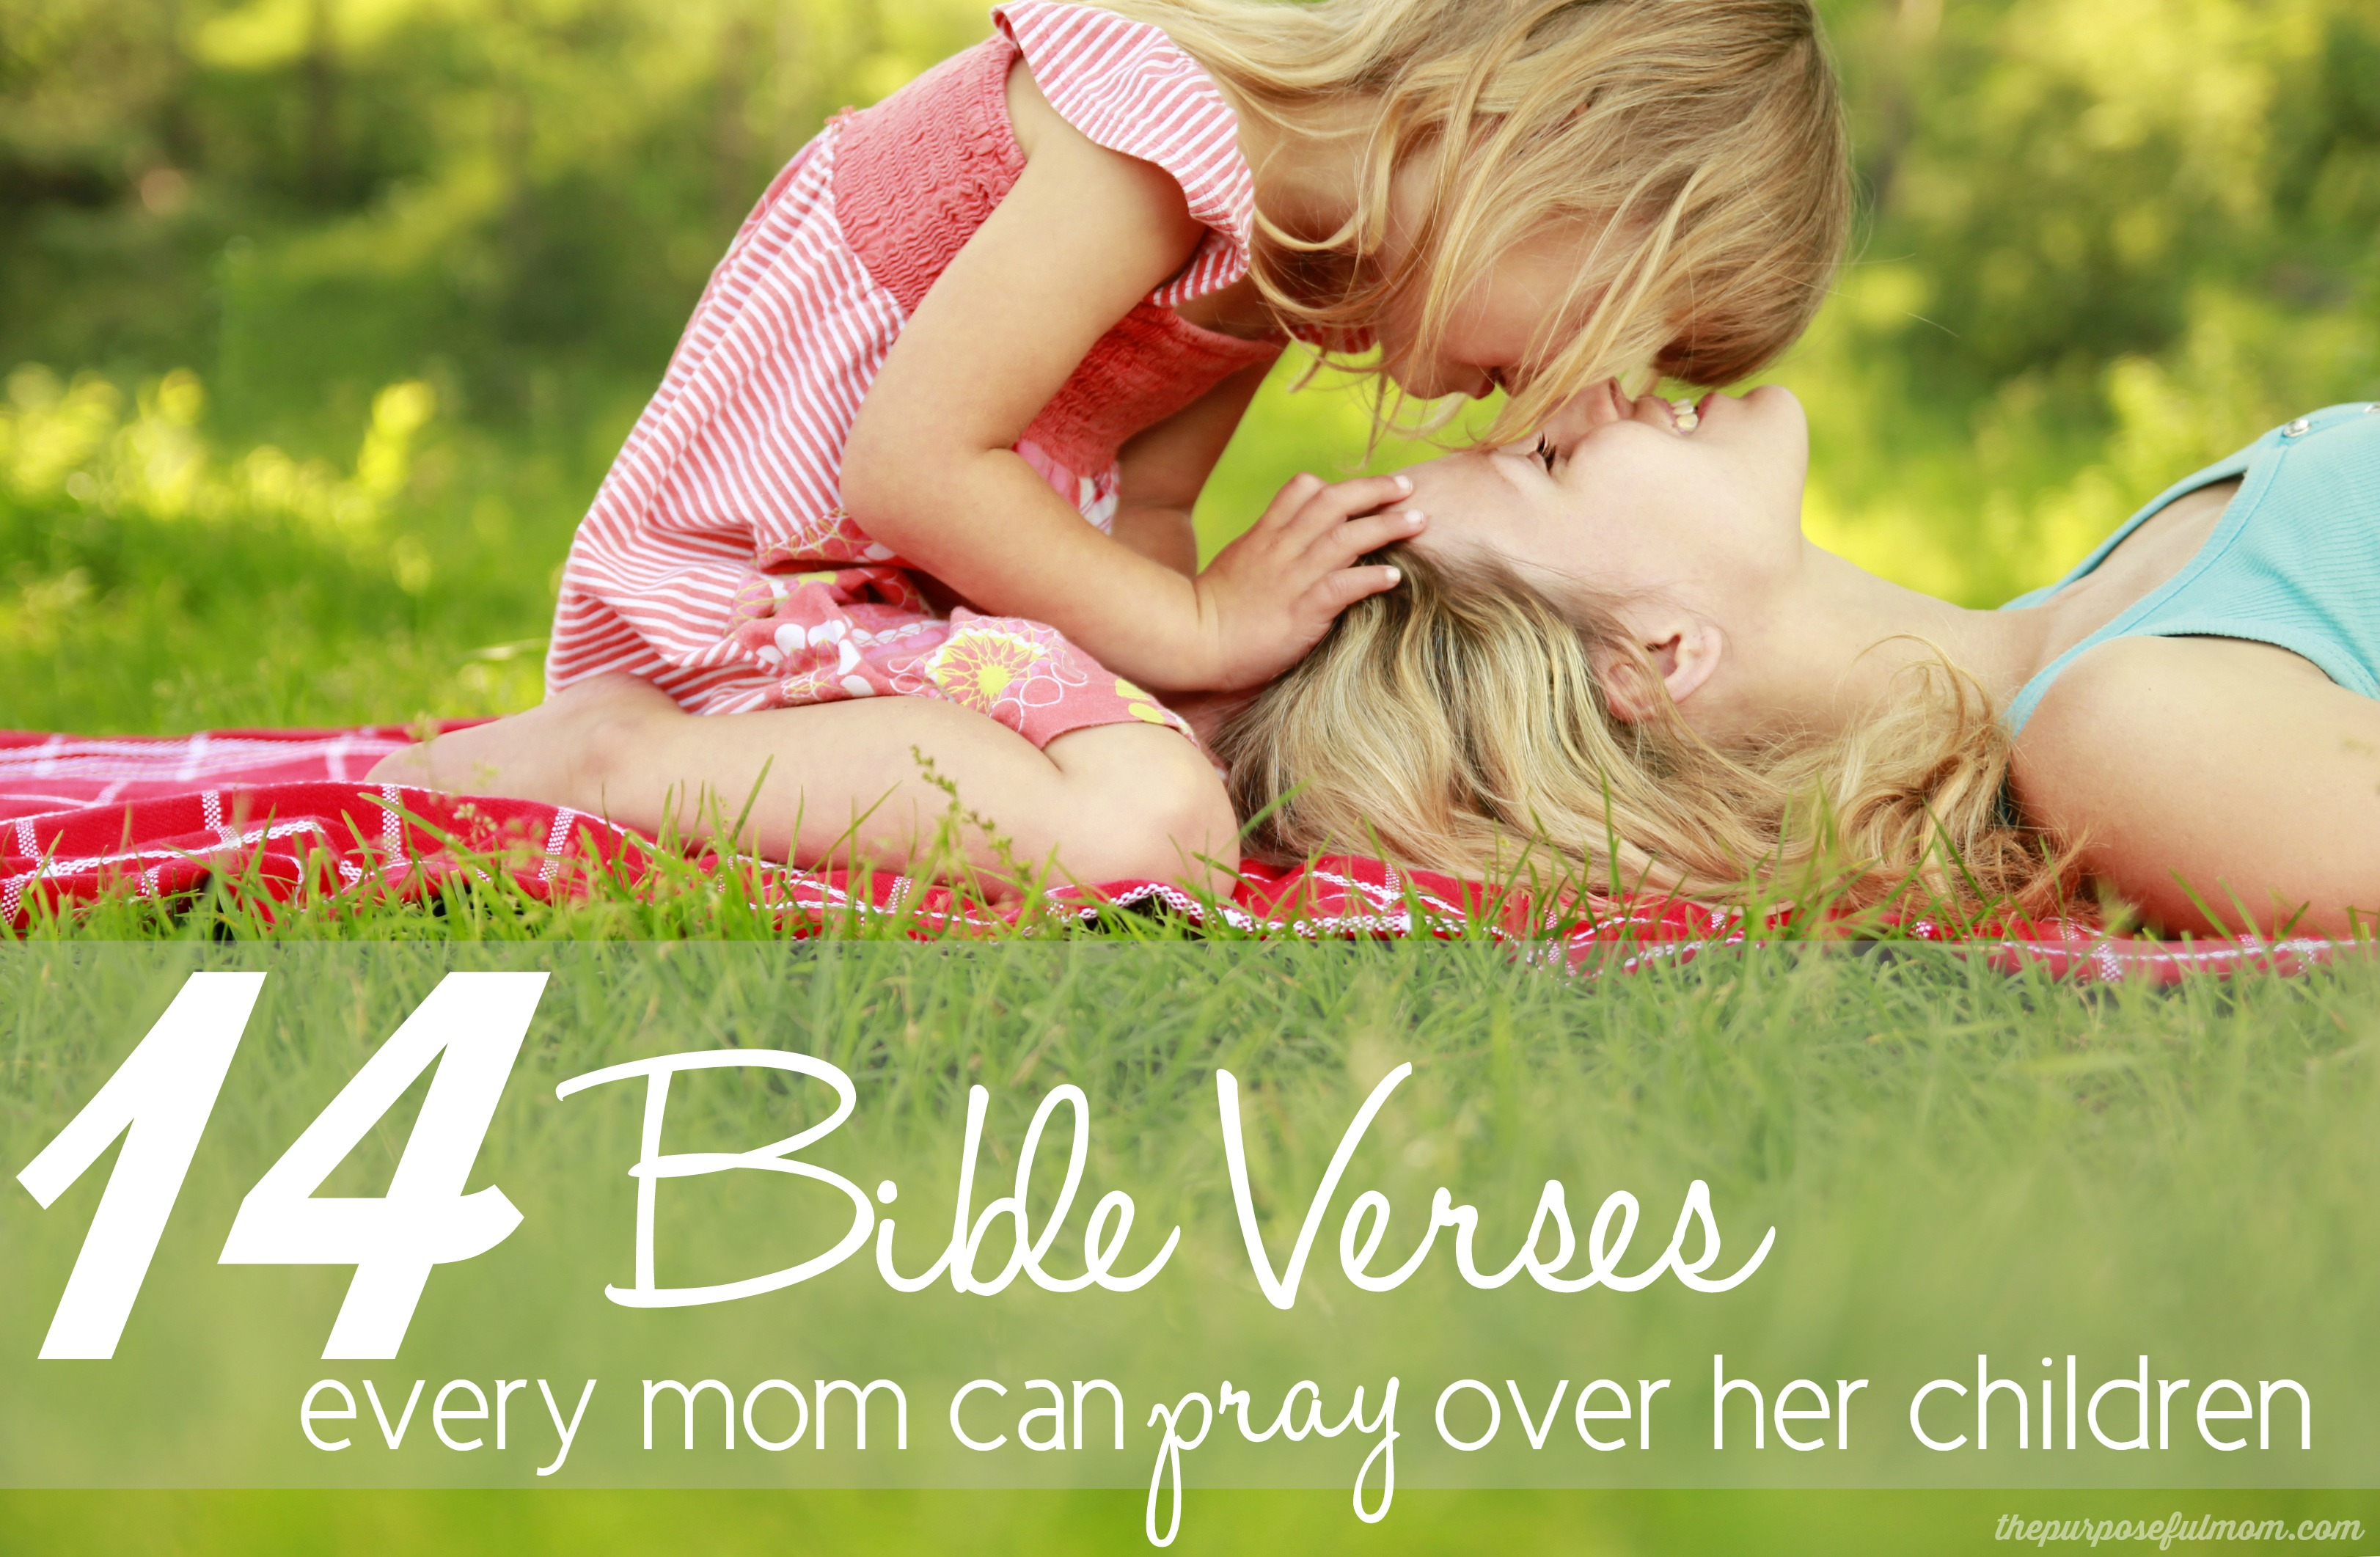 inappropriate love mother kids 14 Scriptures to Pray Over your Unborn Baby {and Other Children!} Plus a  Free Printable! - The Purposeful Mom